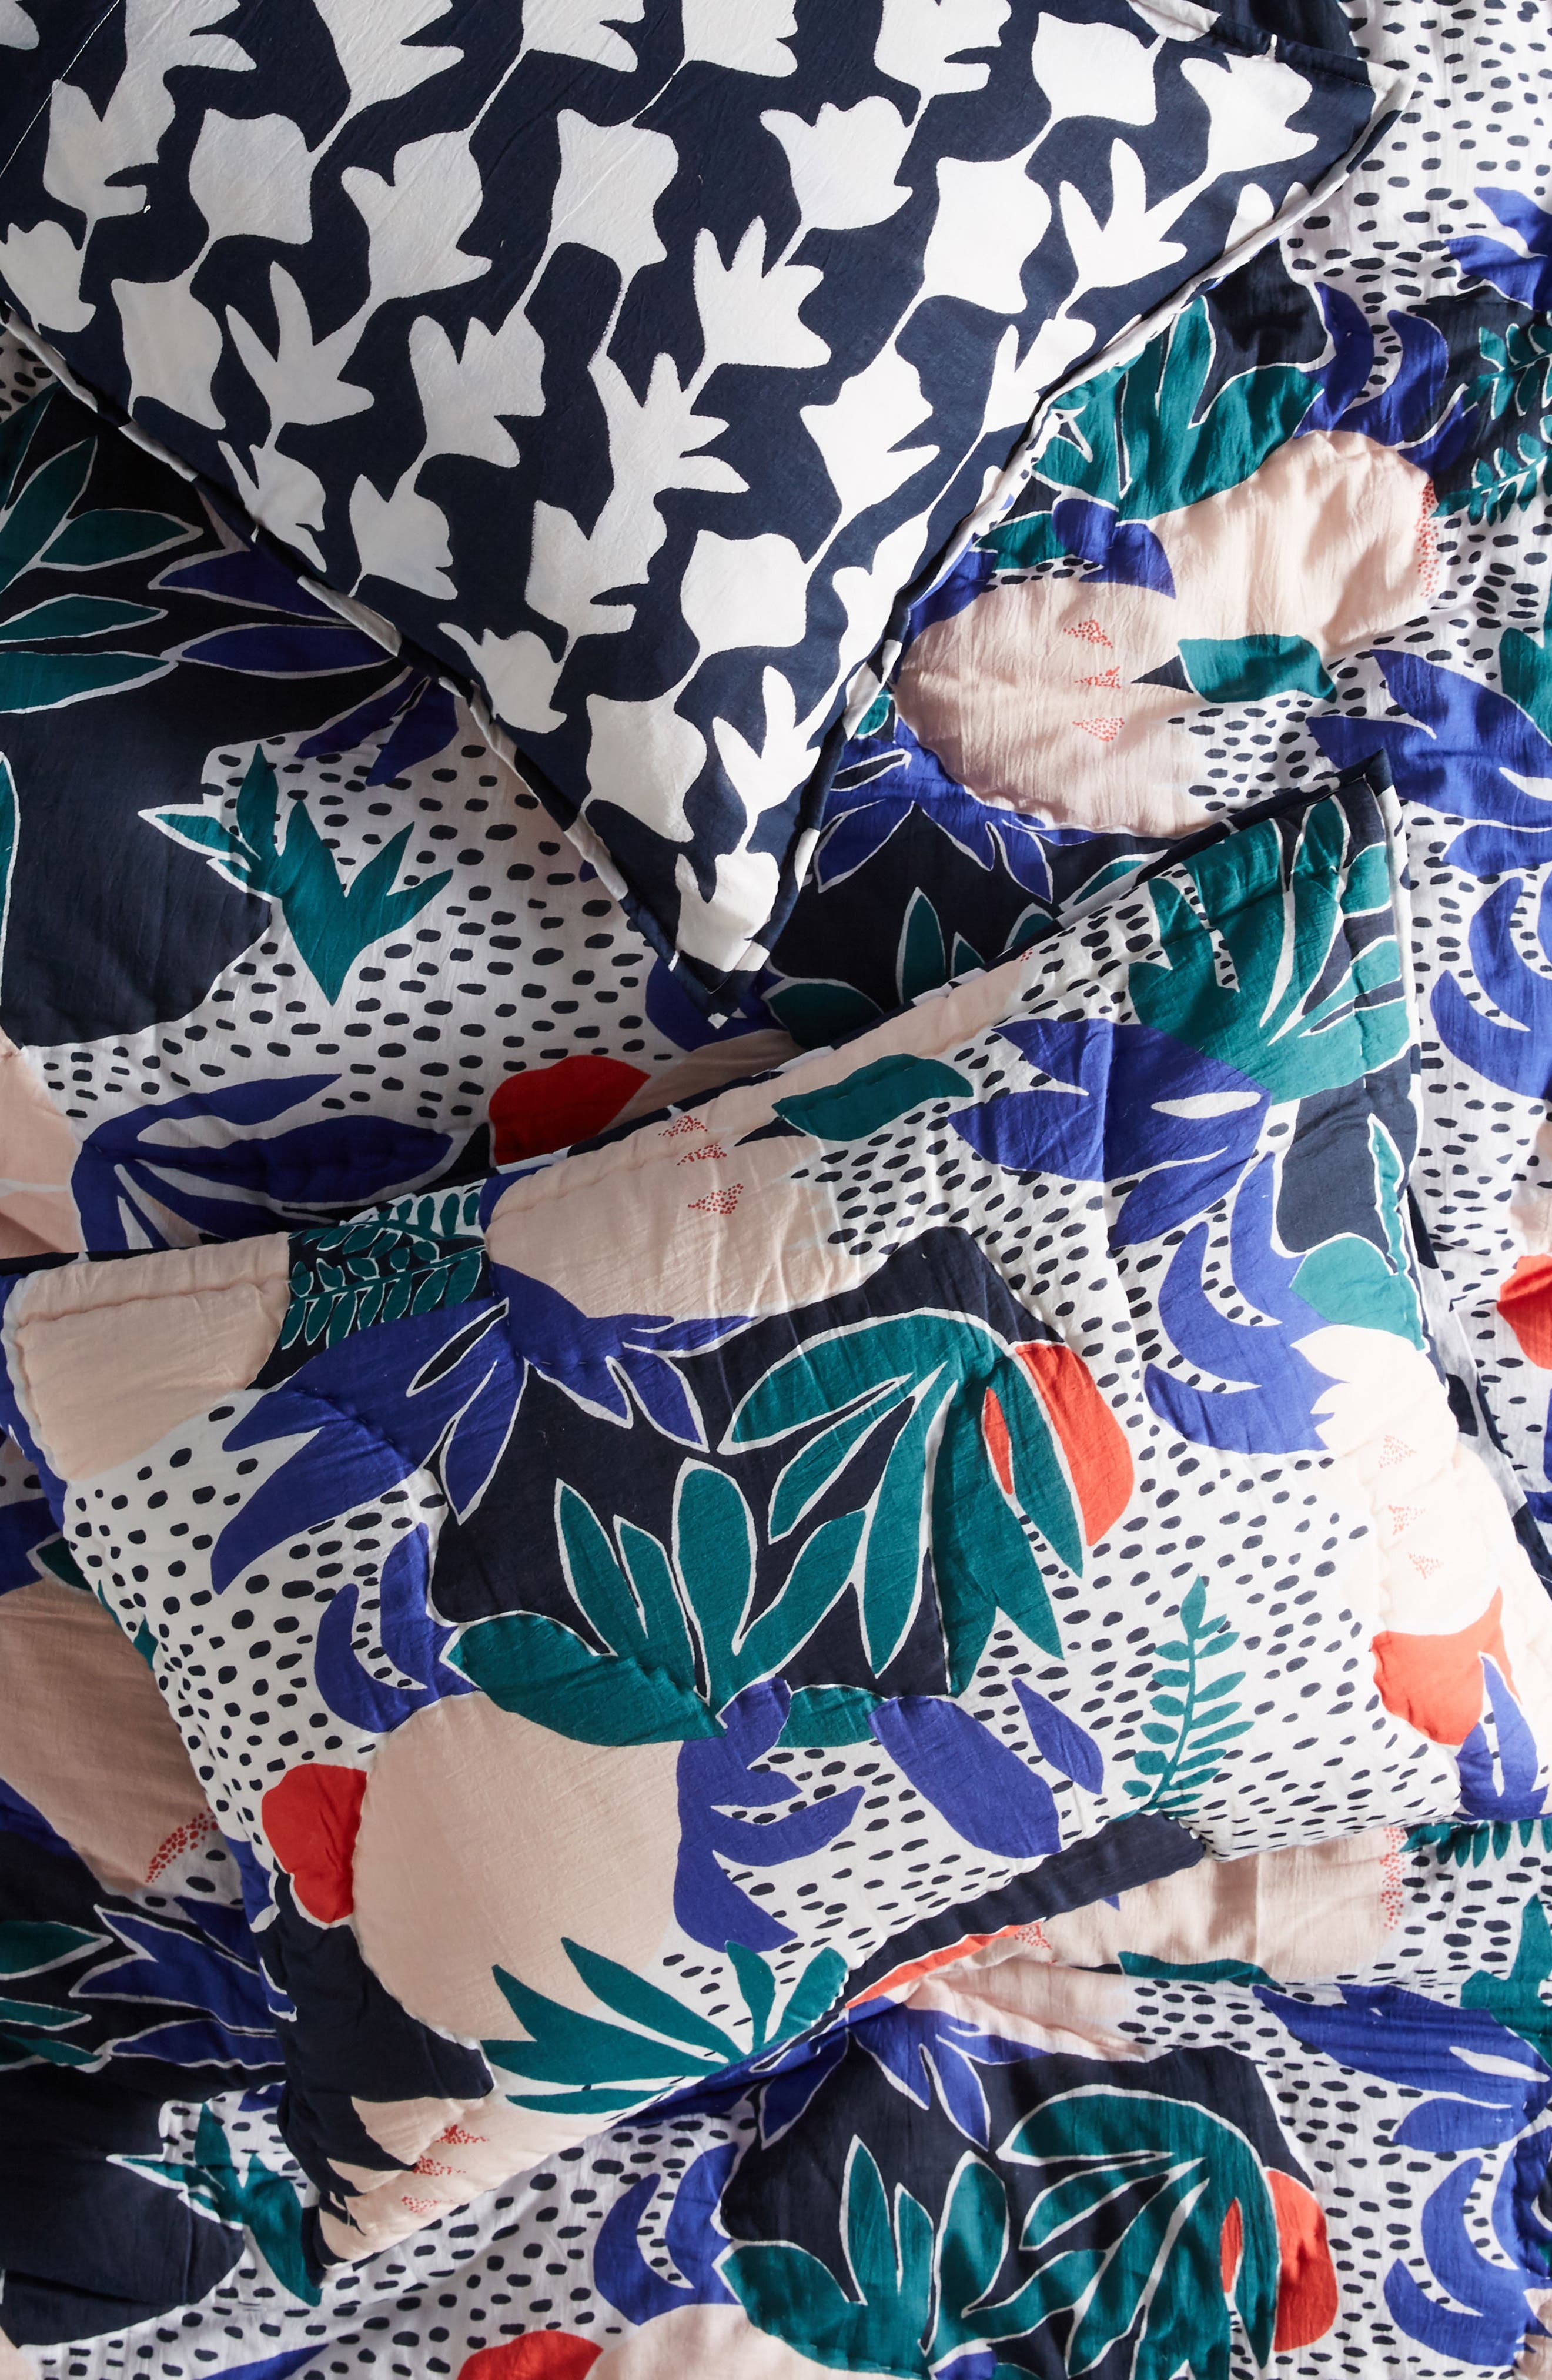 Main Image - Anthropologie Cassie Byrnes Melbourne Pillow Shams